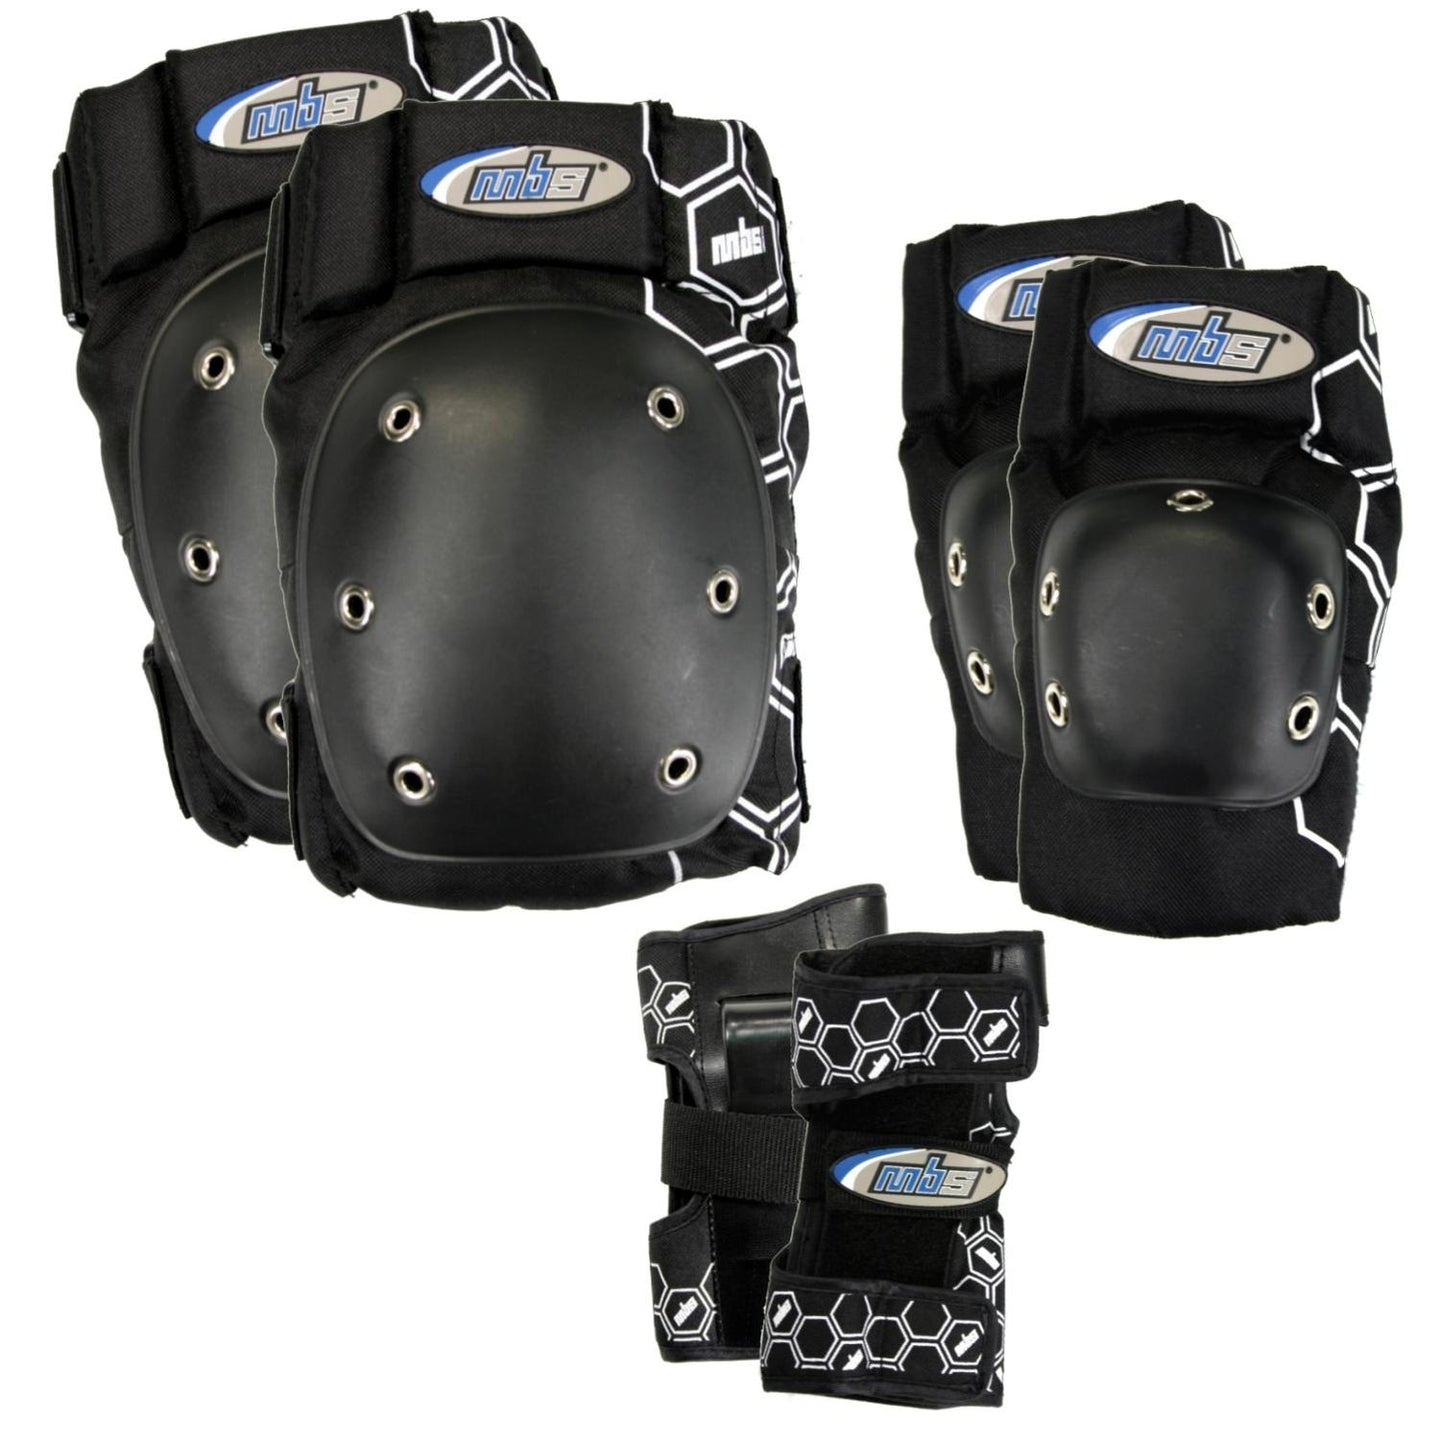 MBS Core Pads - Tri Pack